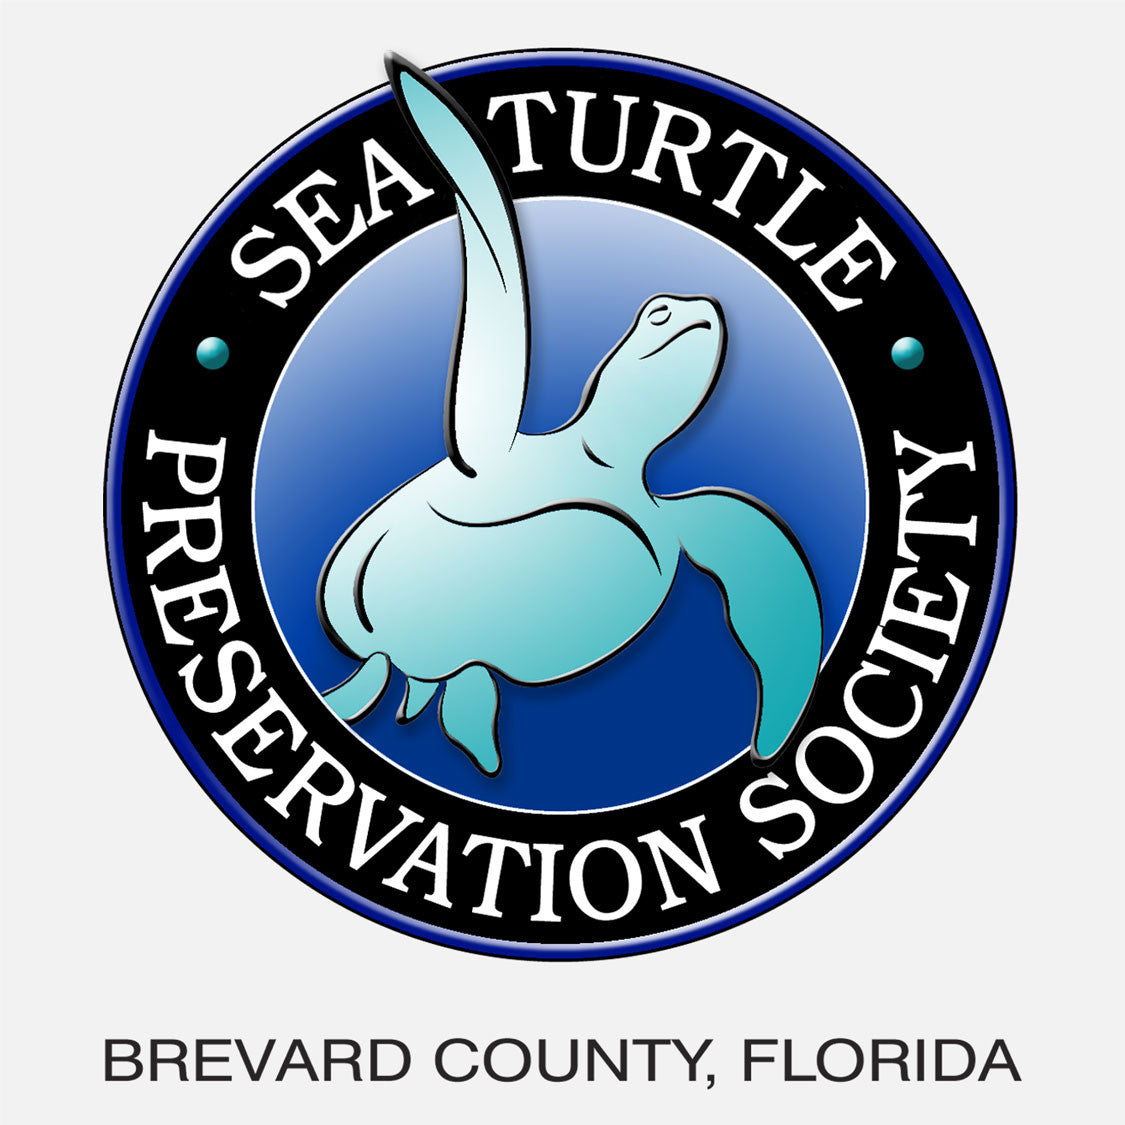 The society's goal is to help maintain the current sea turtle population and to prevent a potentially irreversible decline in that population. The logo is a graphic of a swimming sea turtle.